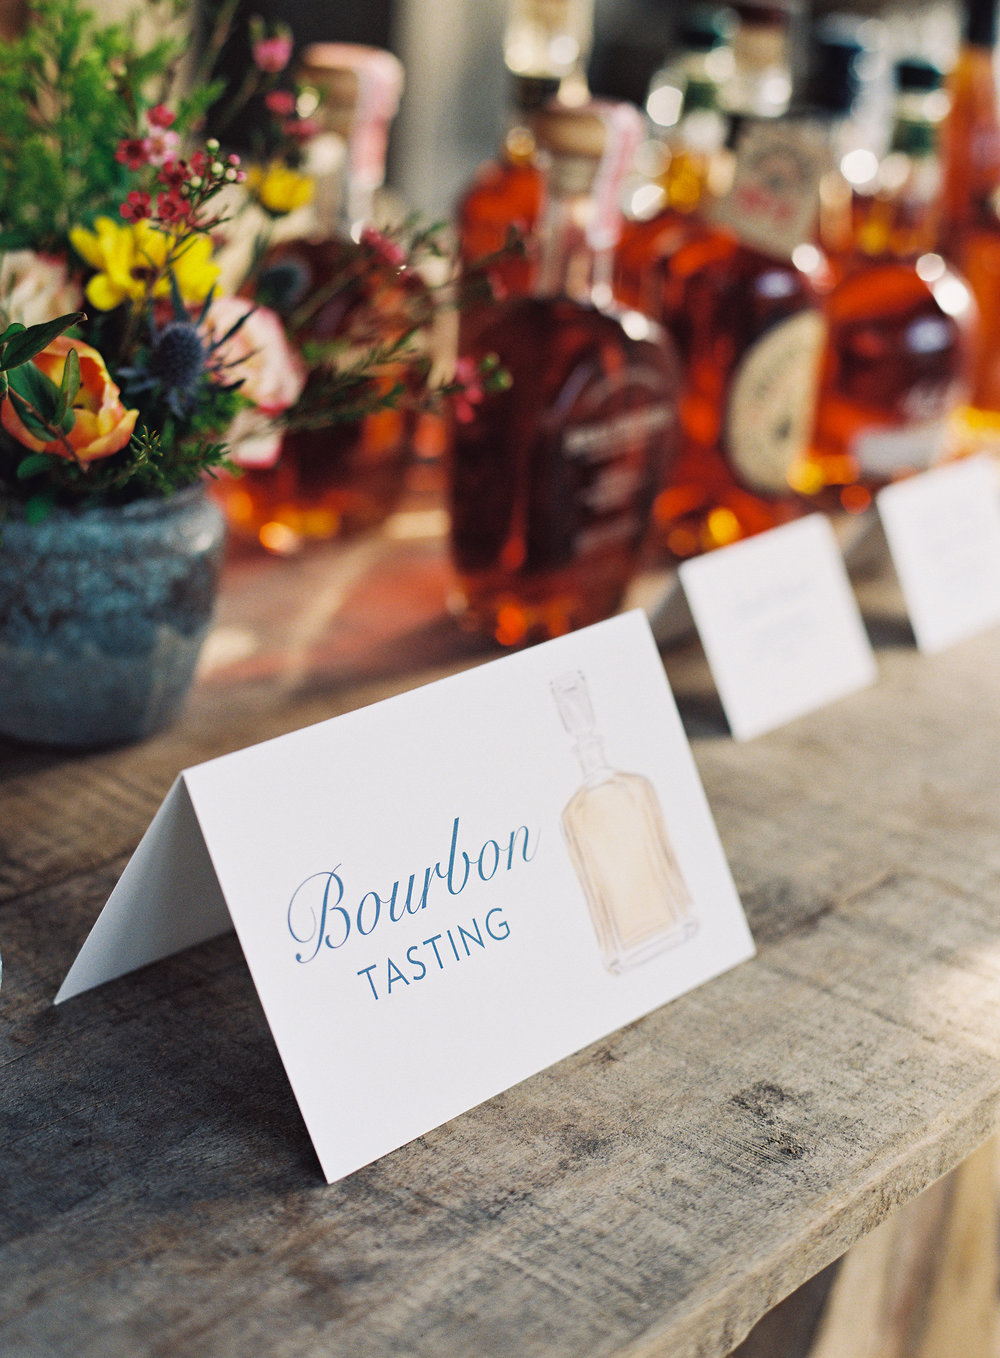 Blackberry Farm Wedding: Welcome BBQ Bourbon Tasting signs | design by Chavelli www.chavelli.com